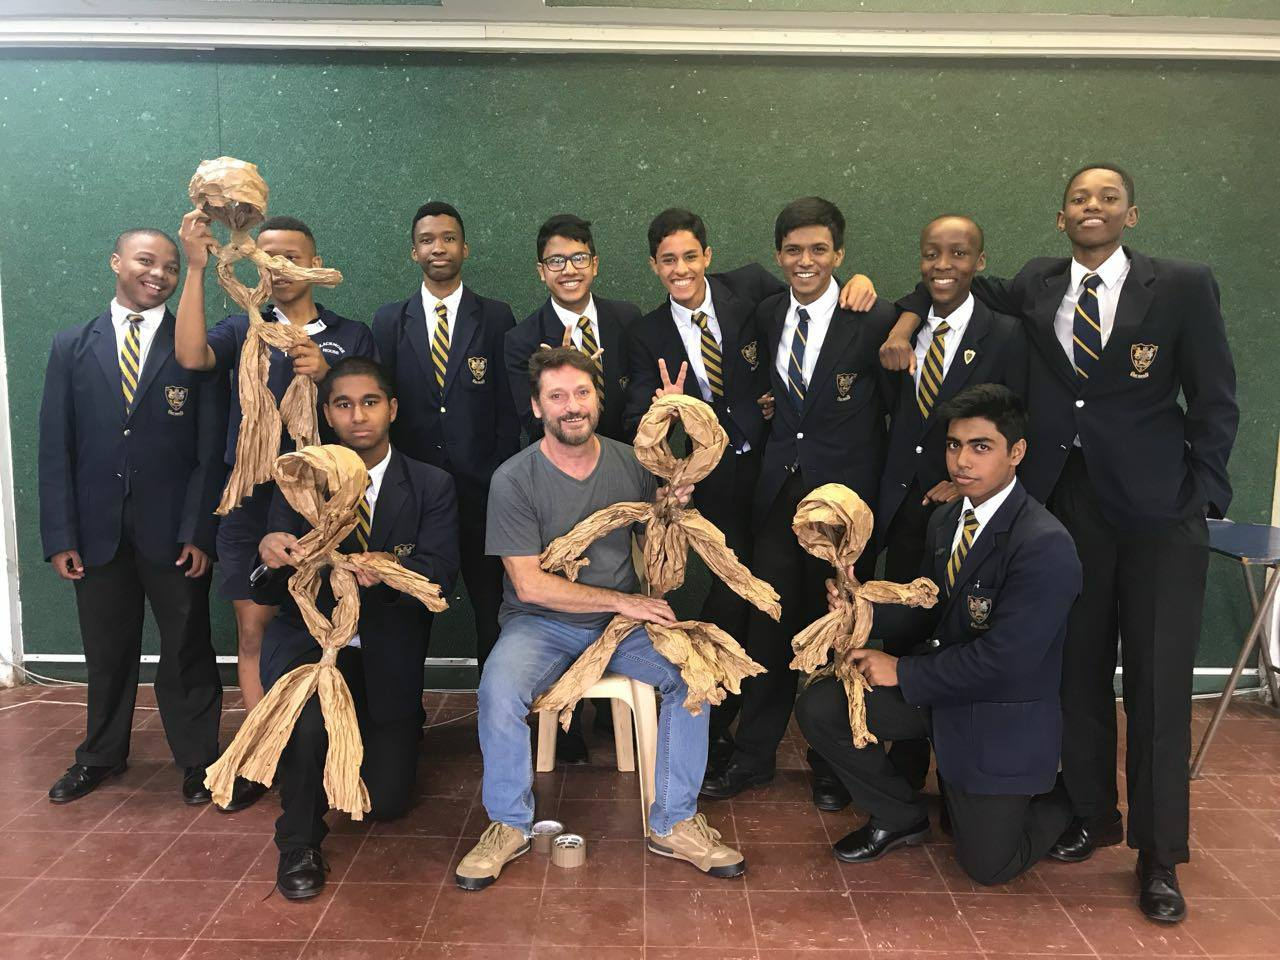 Peter Court in Puppetry – A Performing Arts Elective Workshop